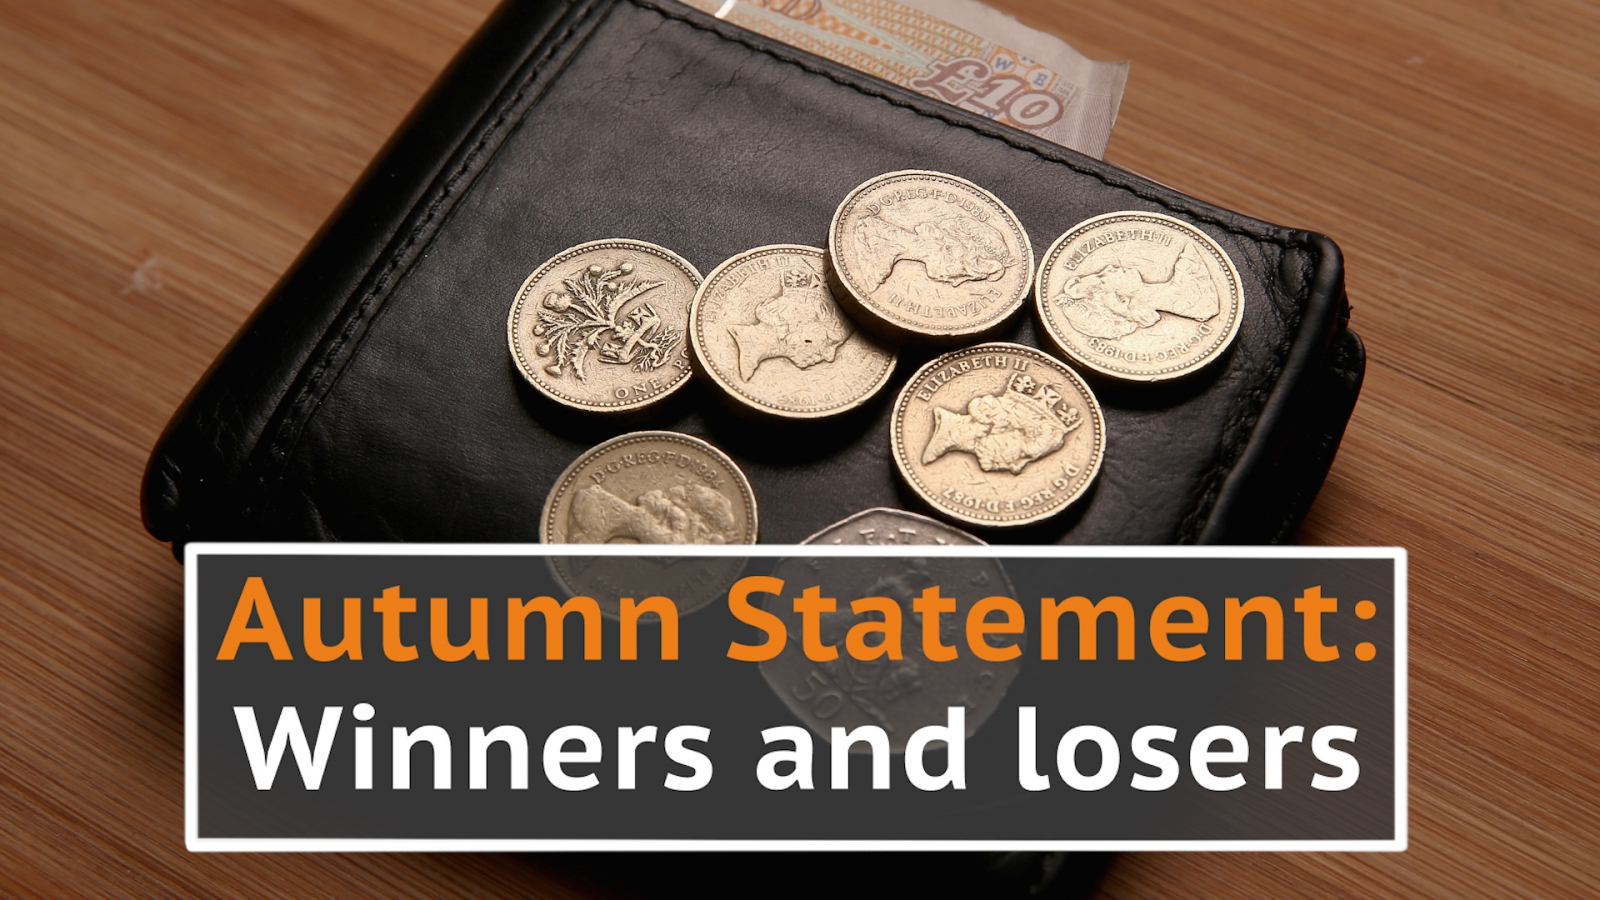 Autumn Statement: Winners and losers